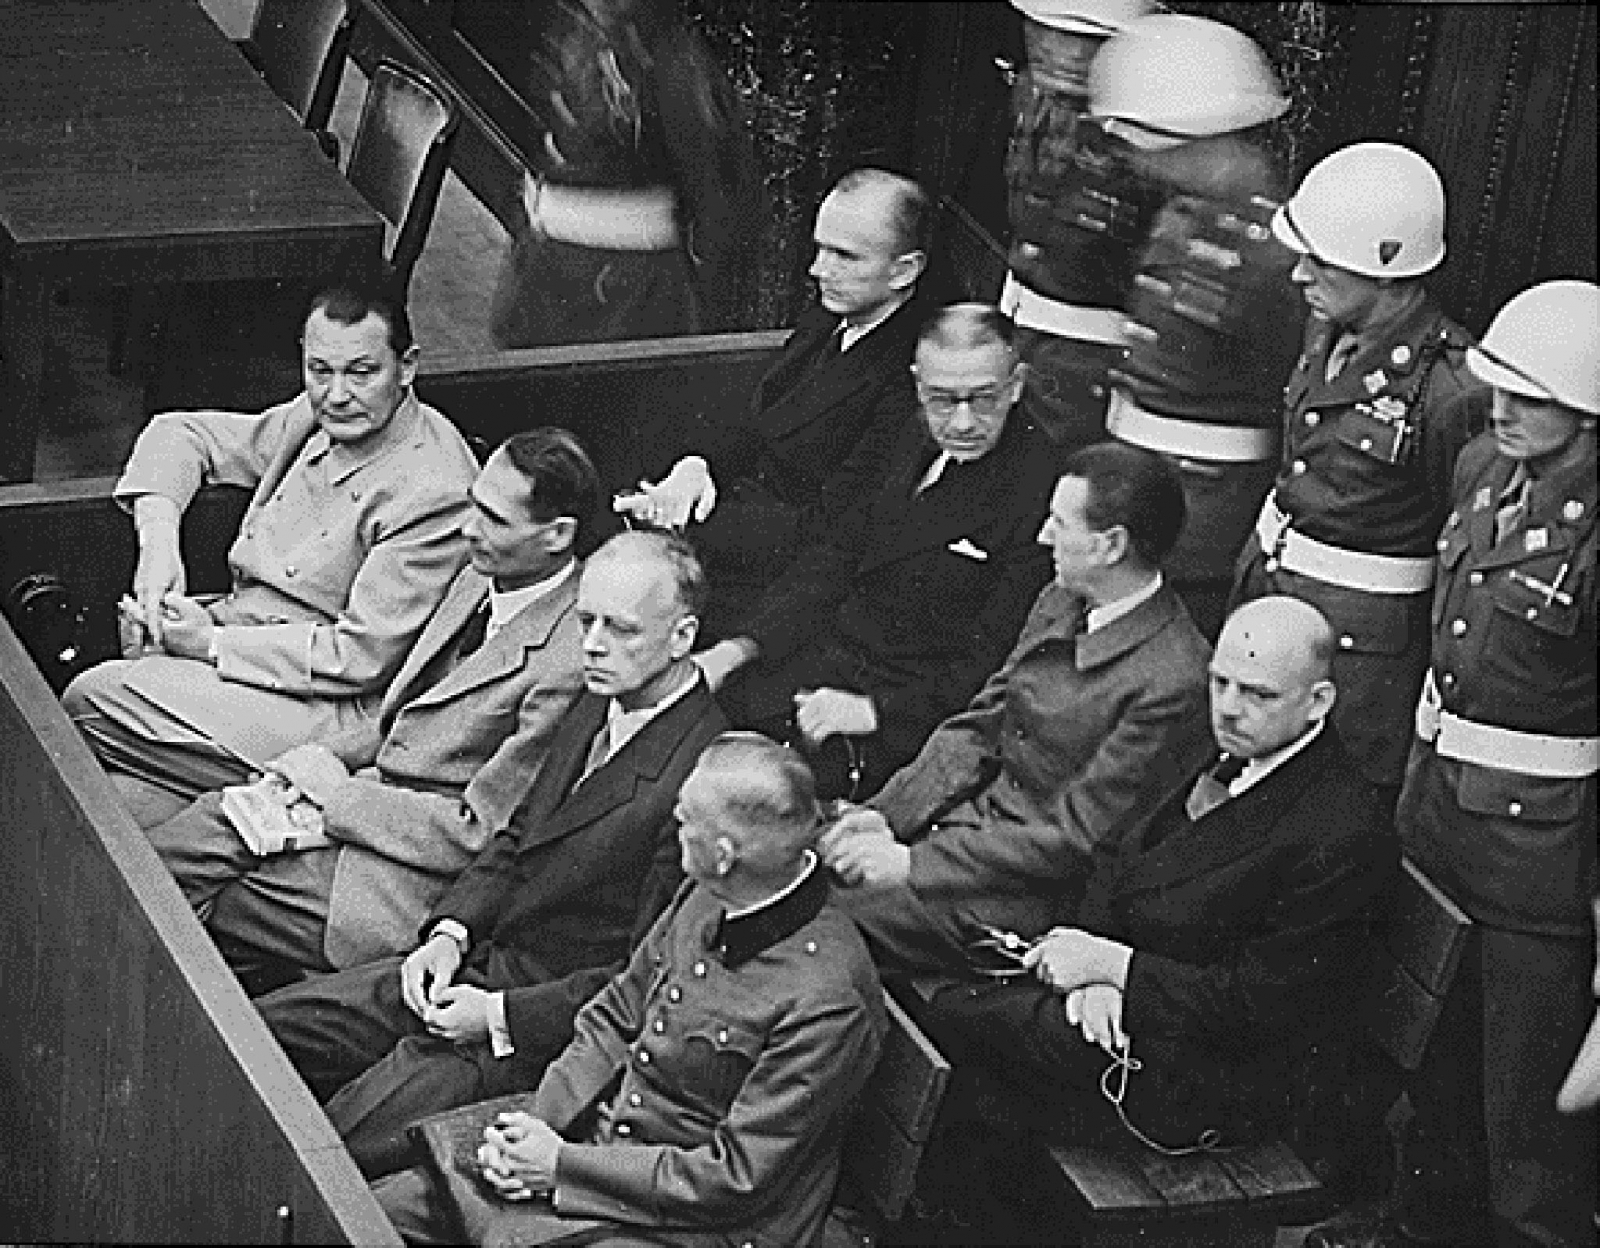 Nazi defendants (L-R front row) Hermann G?ring, Rudolf Hess, Joachim von Ribbentrop and Wilhelm Keitel sit in the dock of their war crimes trial at Nuremberg circa 1945-1946.